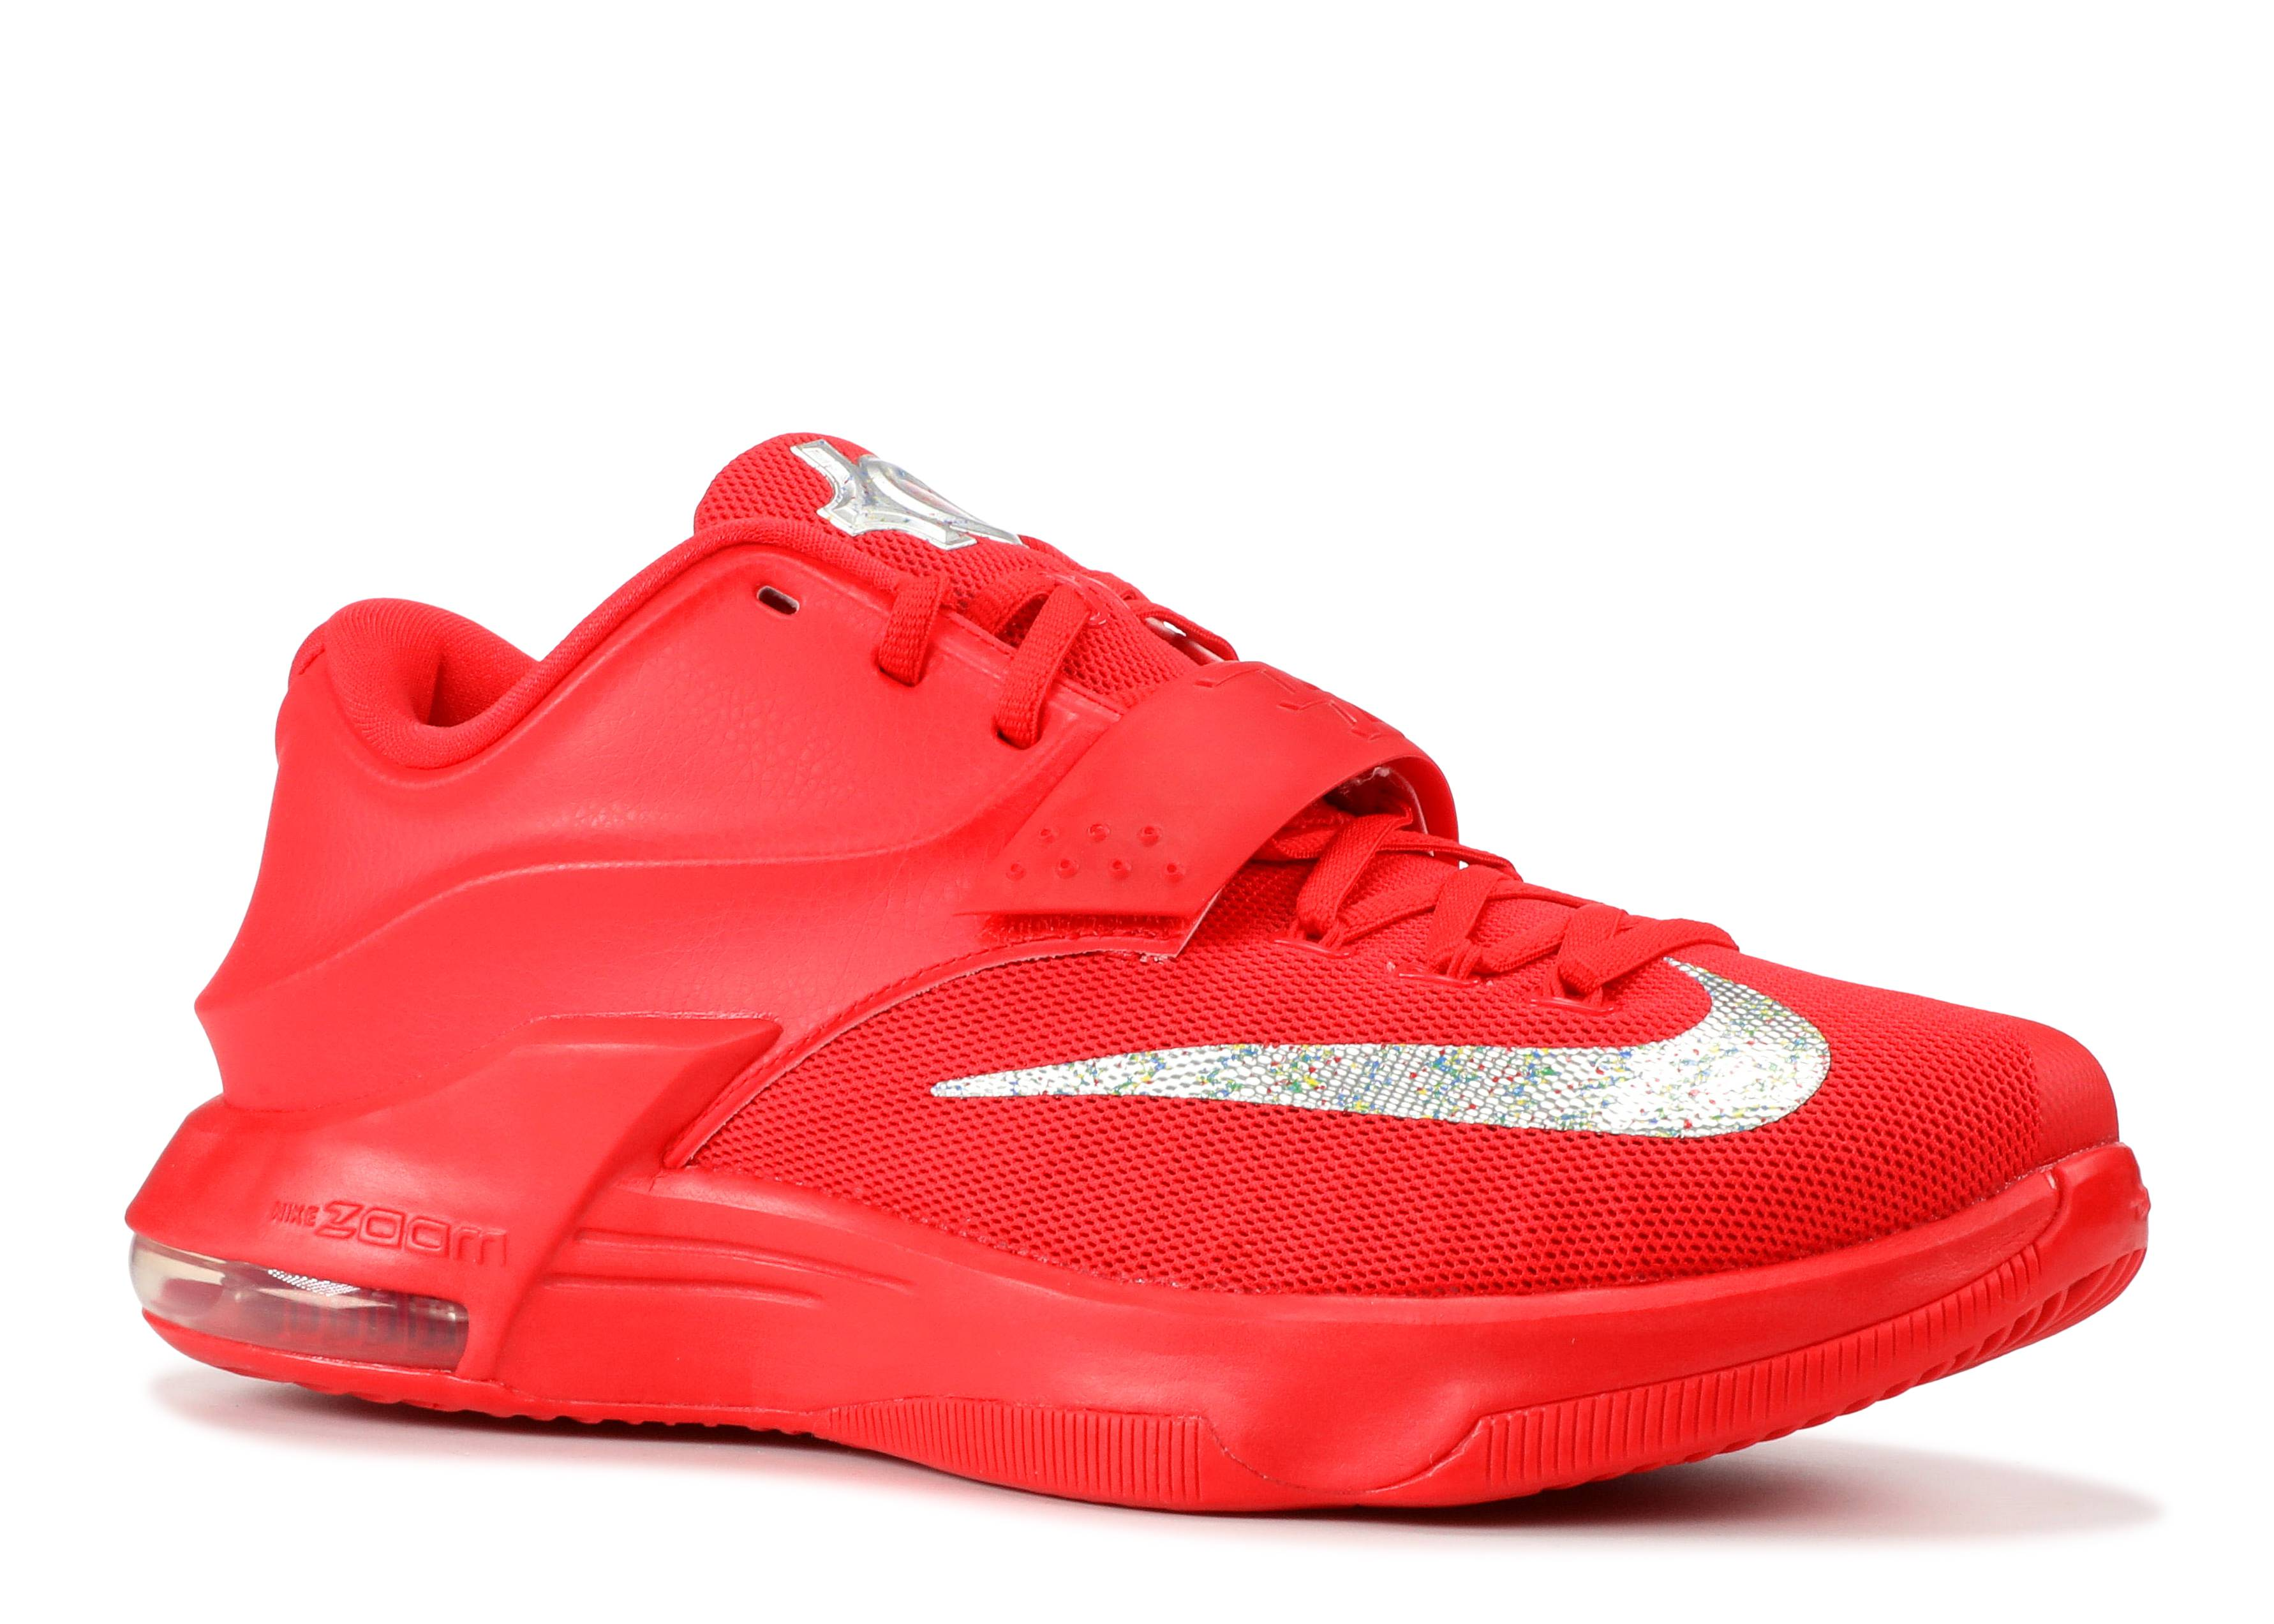 kd 7 ep quotglobal gamequot nike 653997 660 action red